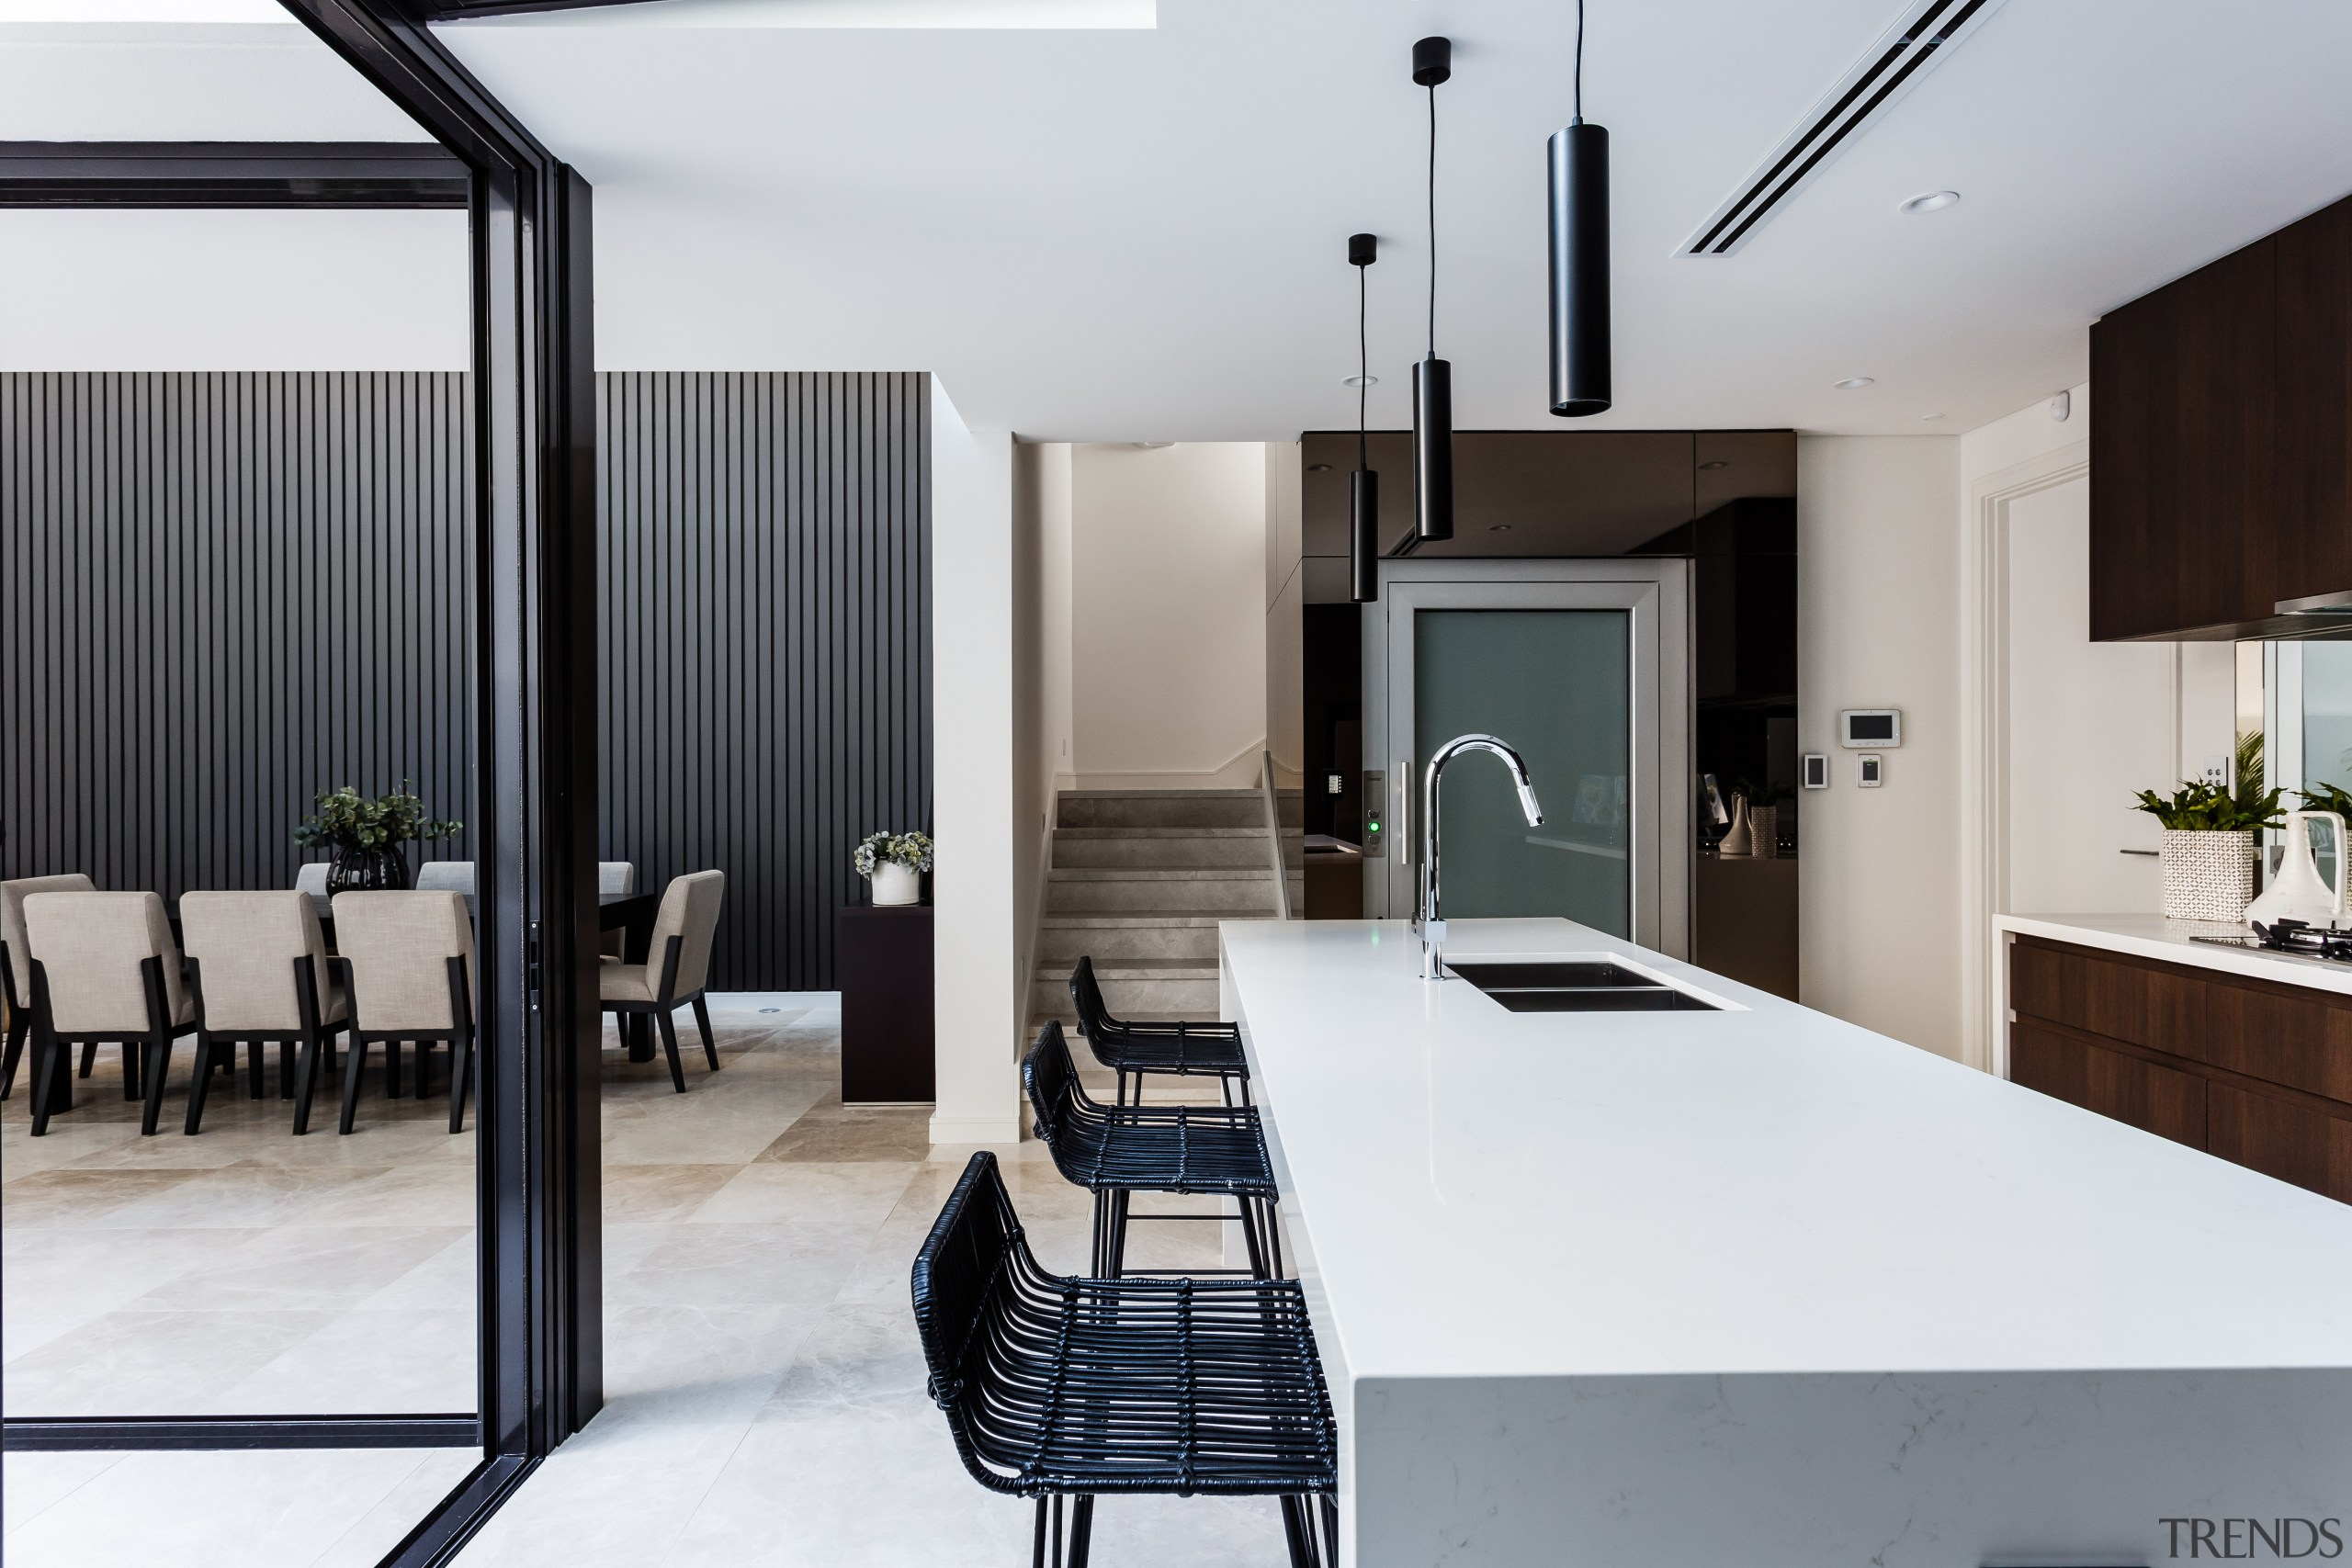 This two-tone kitchen is on view from the architecture, house, interior design, table, white, gray, black